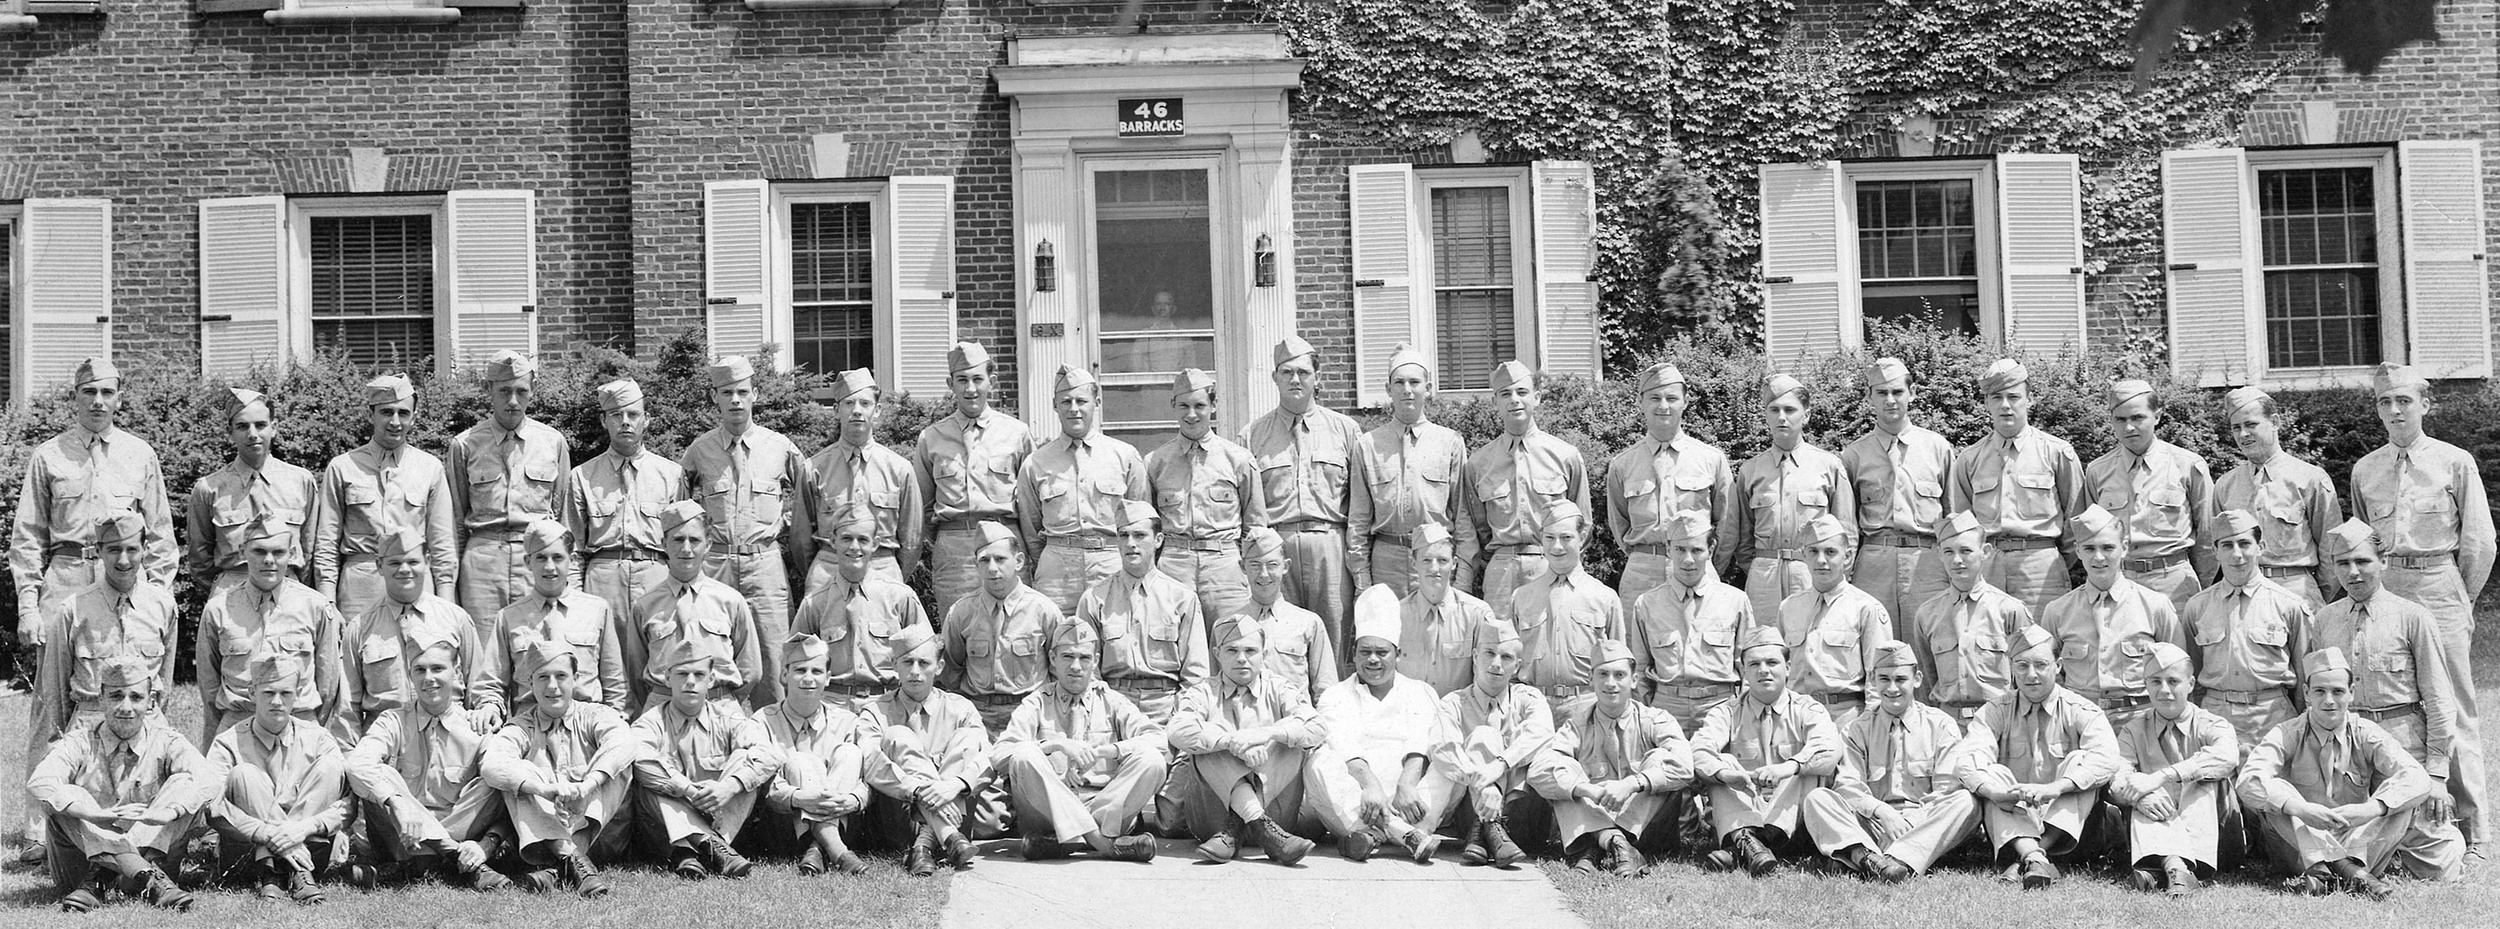 Barracks 46 - with Giffy in the bottom row in center